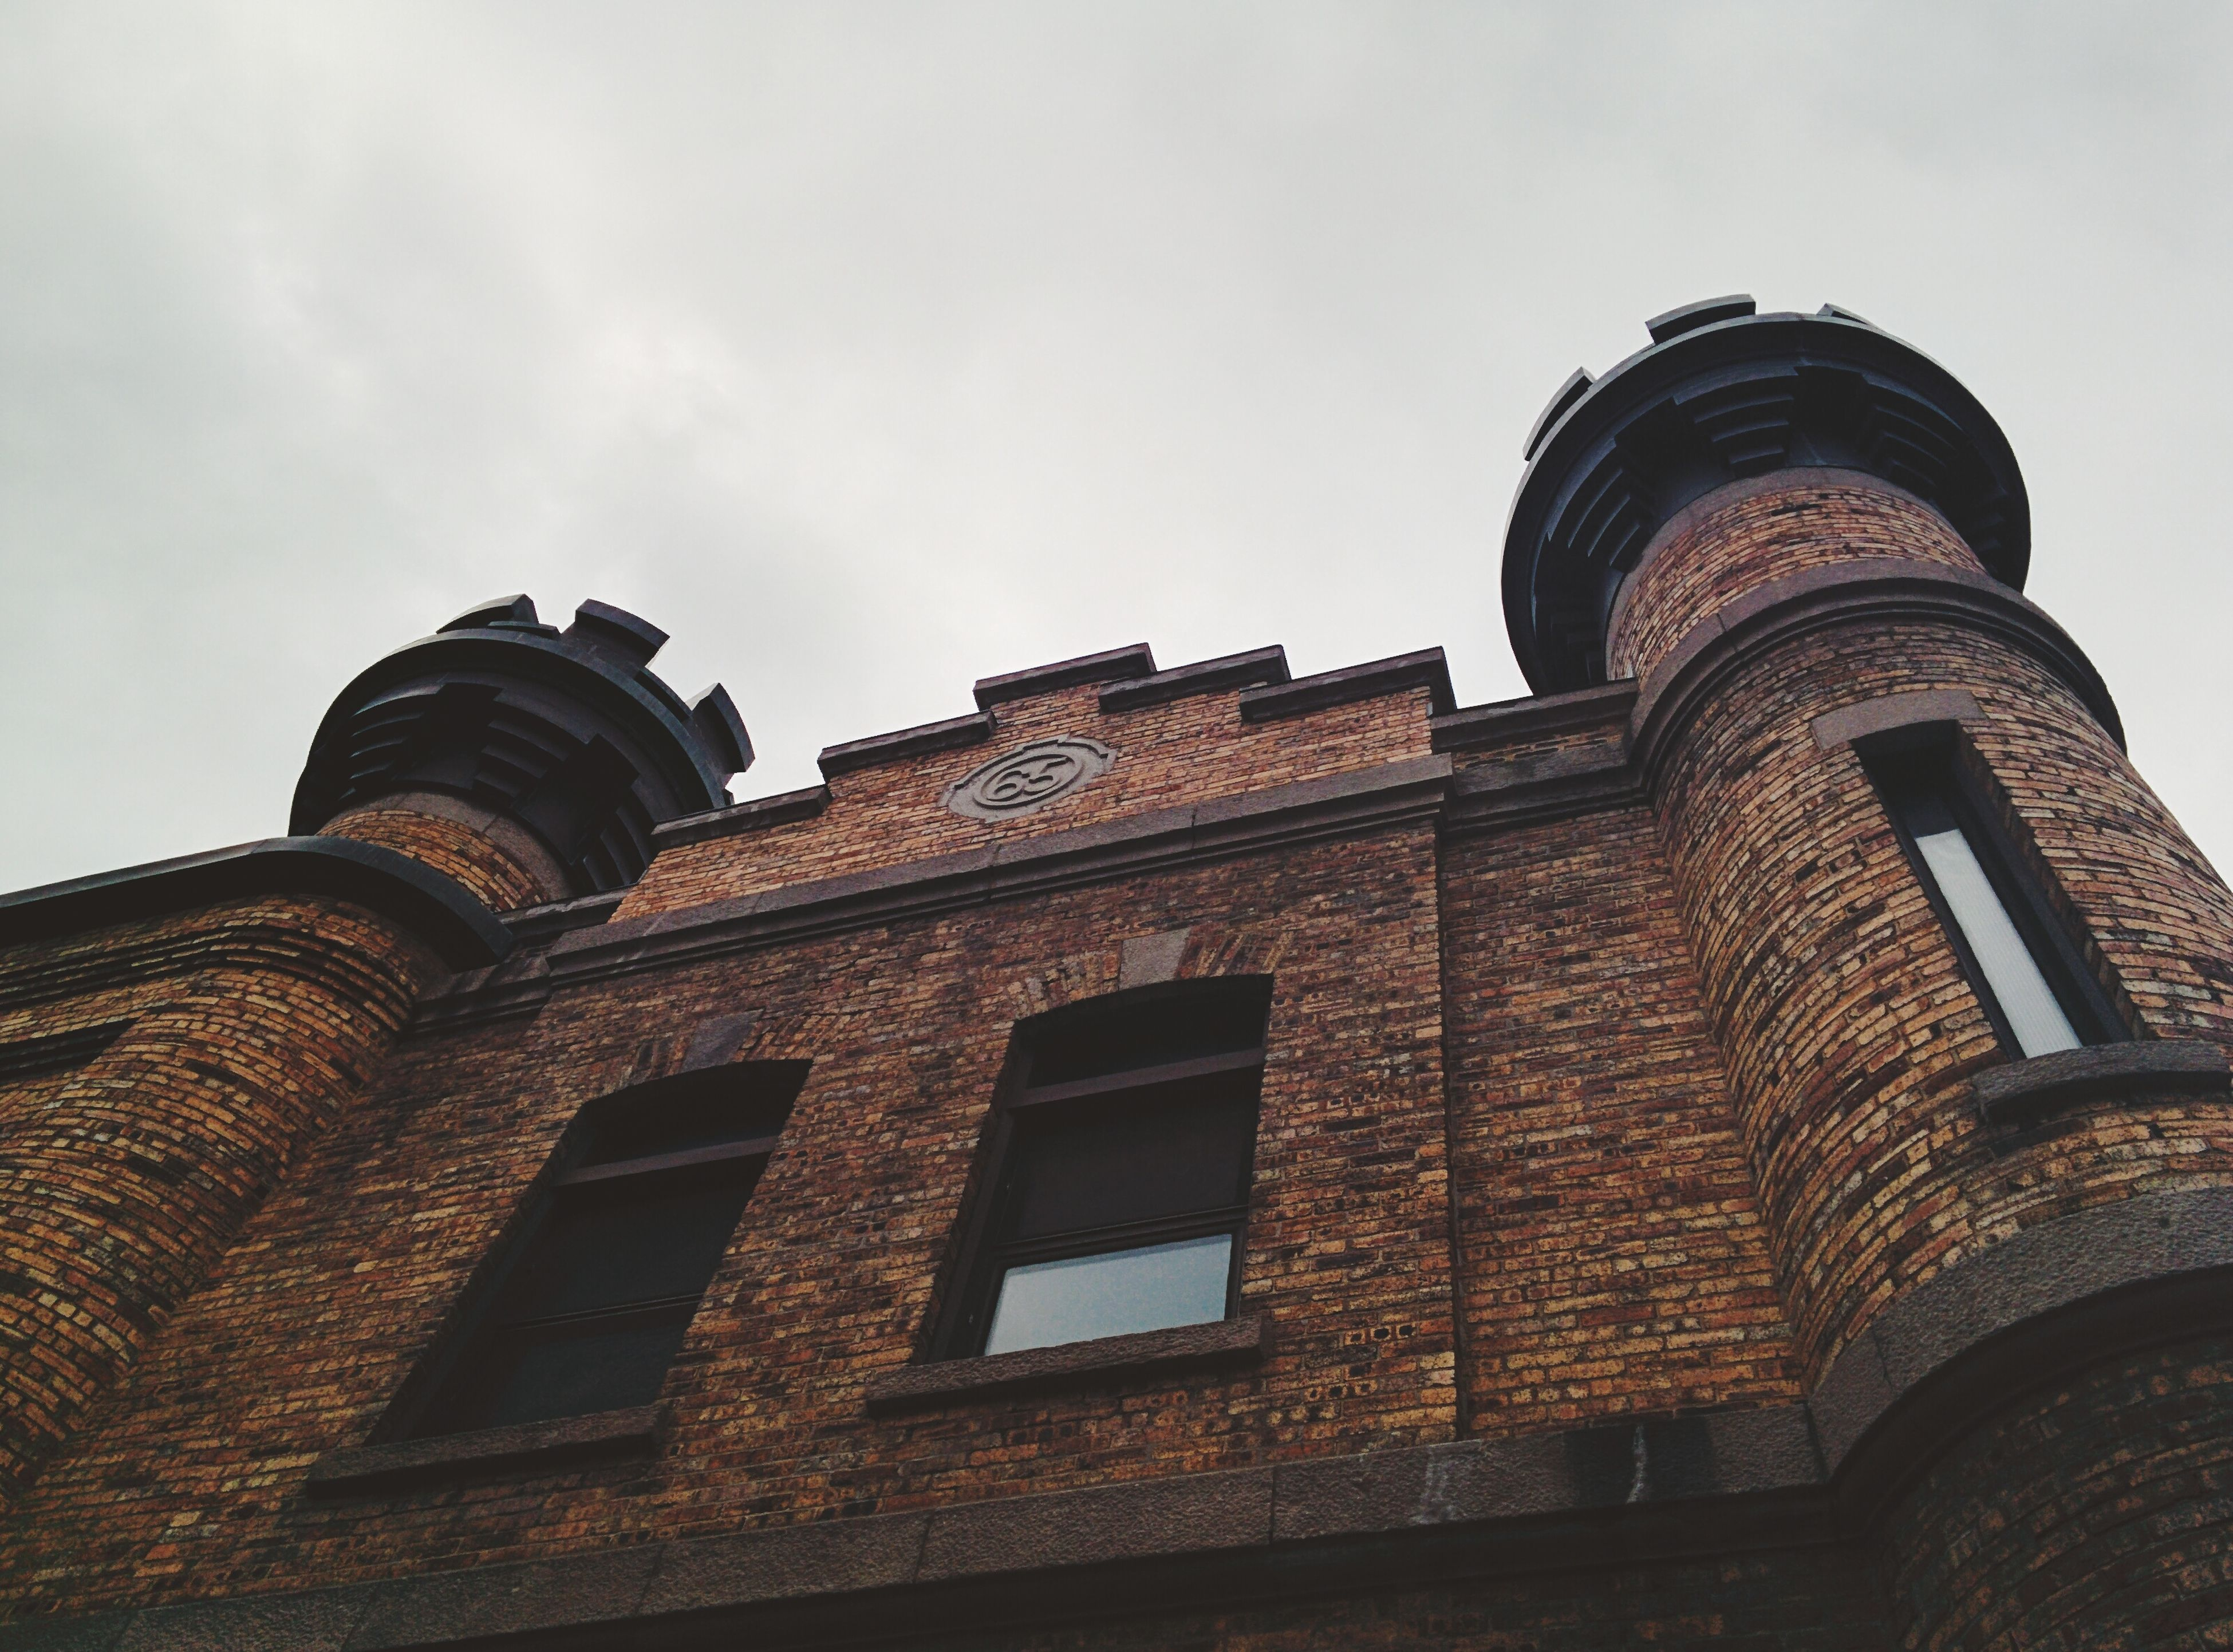 architecture, building exterior, built structure, low angle view, sky, tower, window, history, old, high section, cloud - sky, day, outdoors, no people, exterior, arch, cloud, brick wall, building, facade